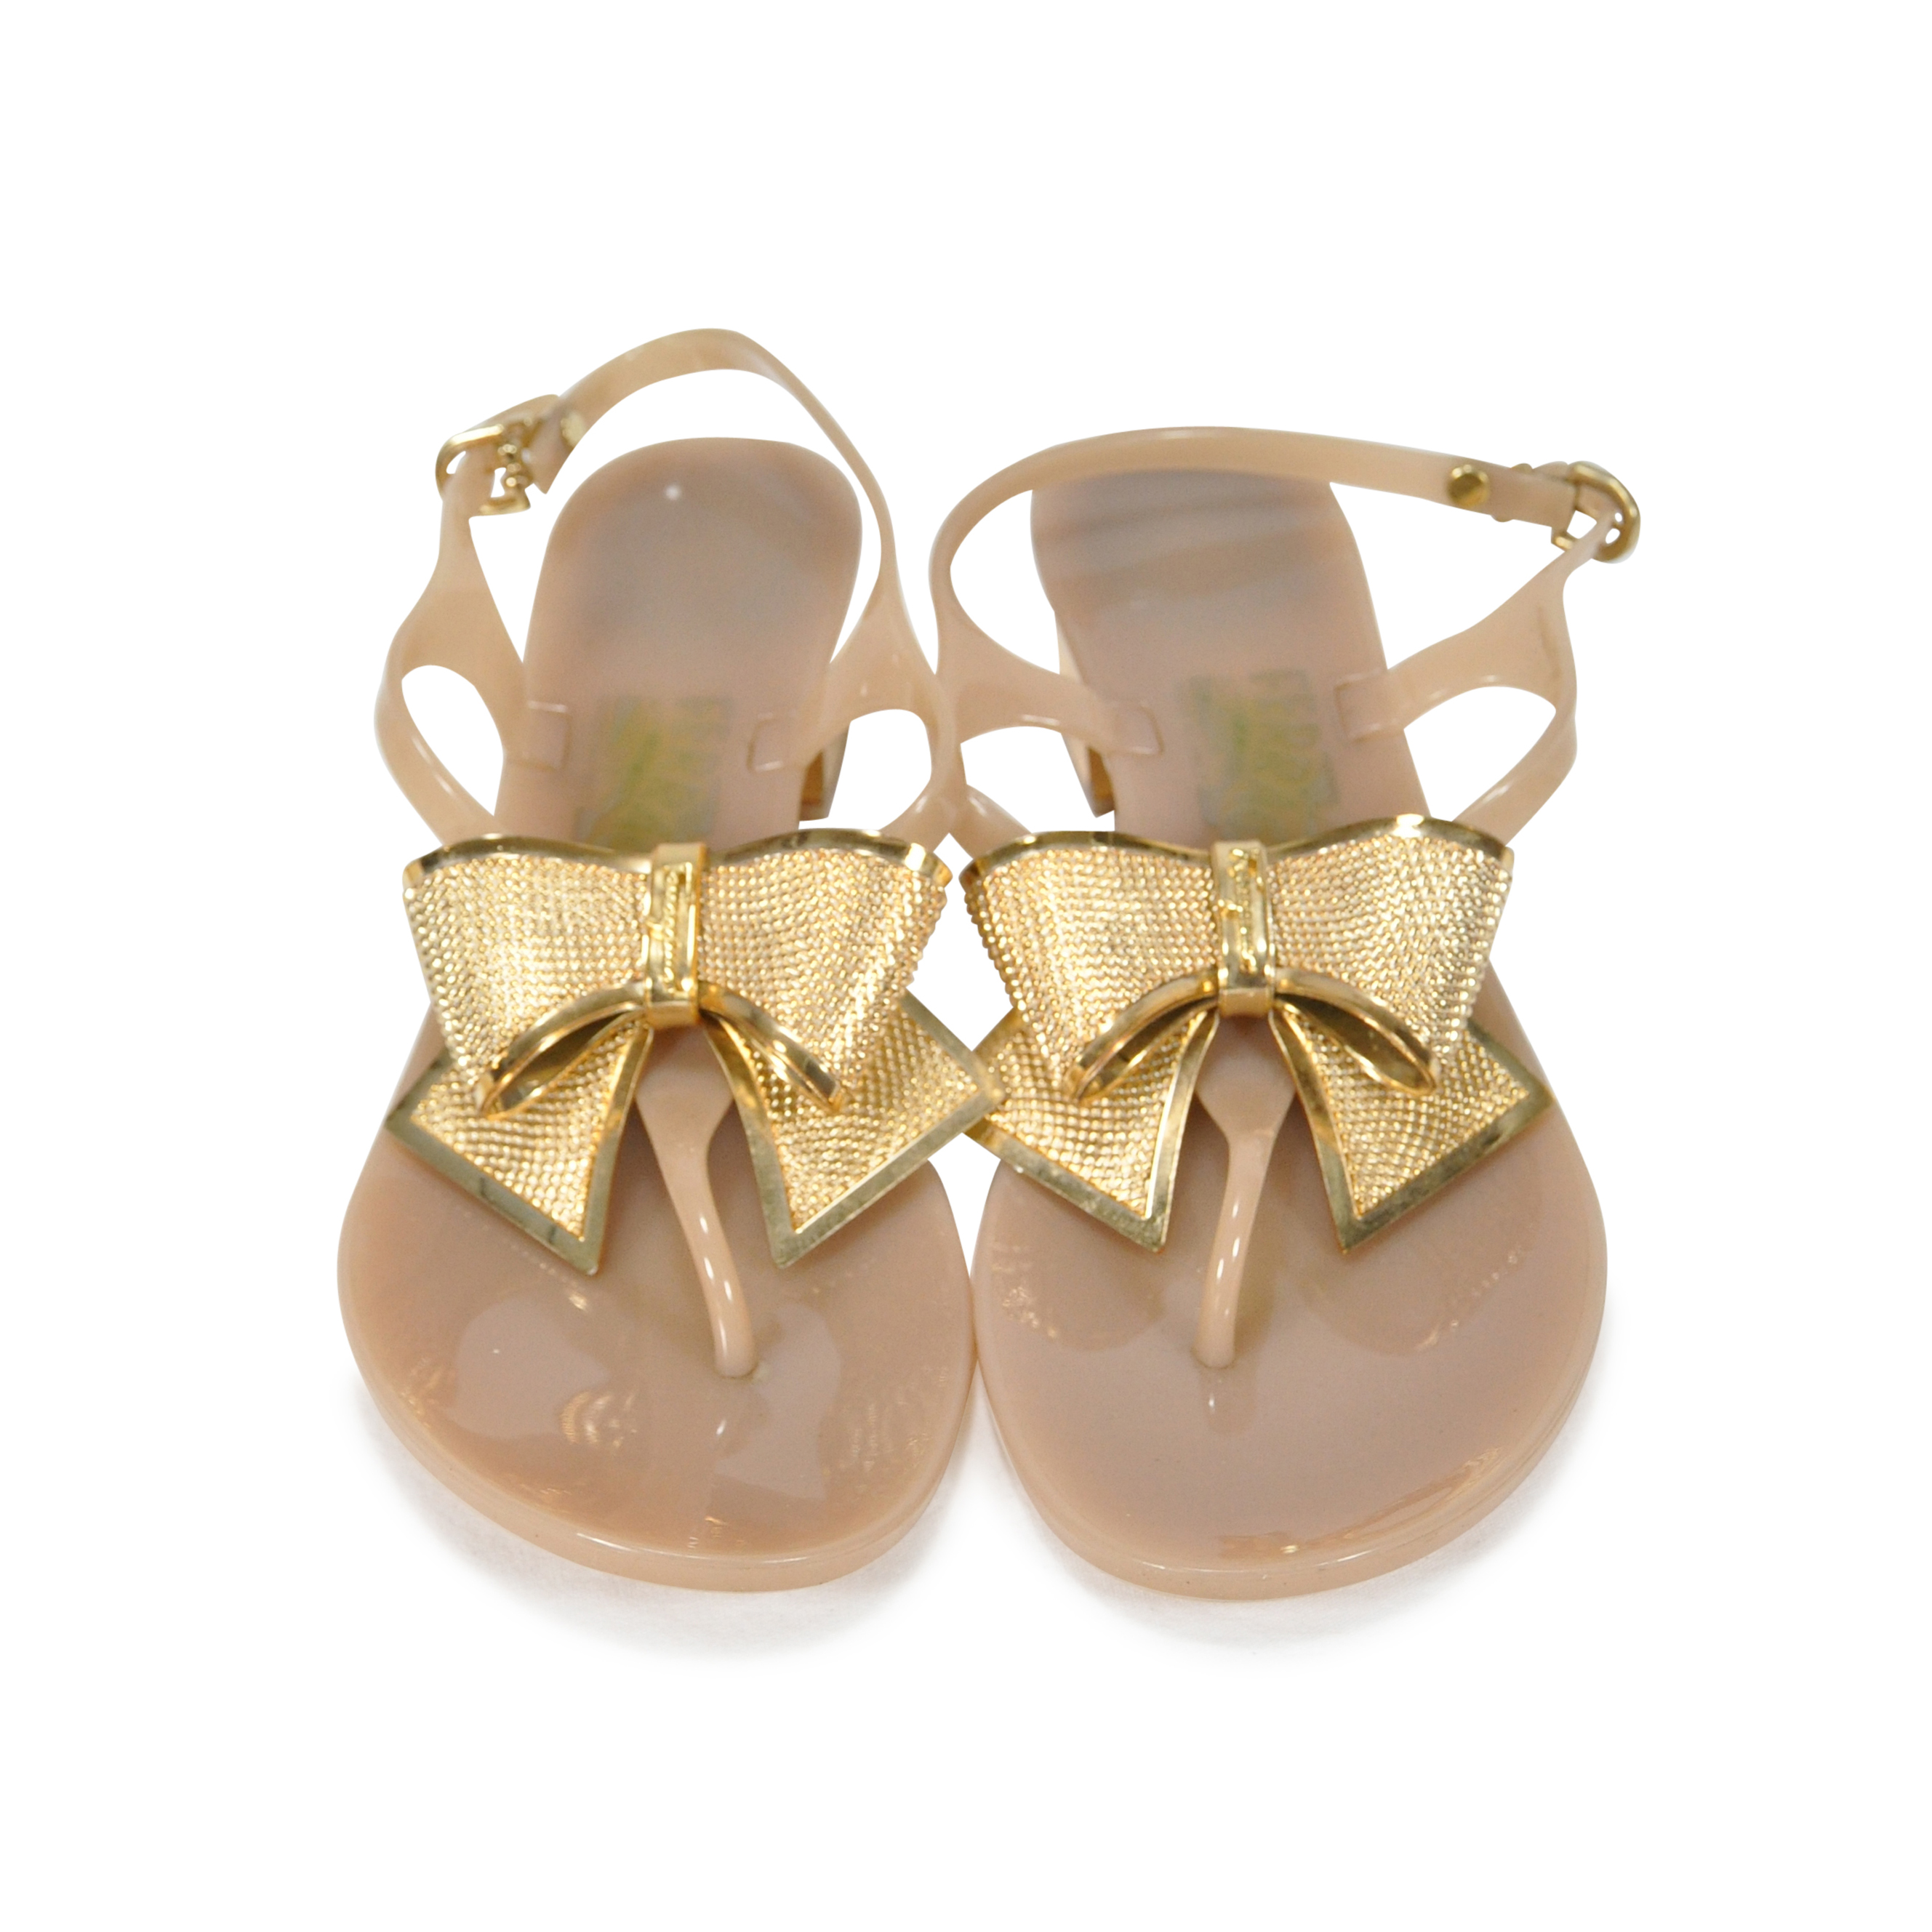 2a7a50d9fc0a Authentic Second Hand Salvatore Ferragamo Bali Metal Bow Jelly Sandals  (PSS-247-00009)